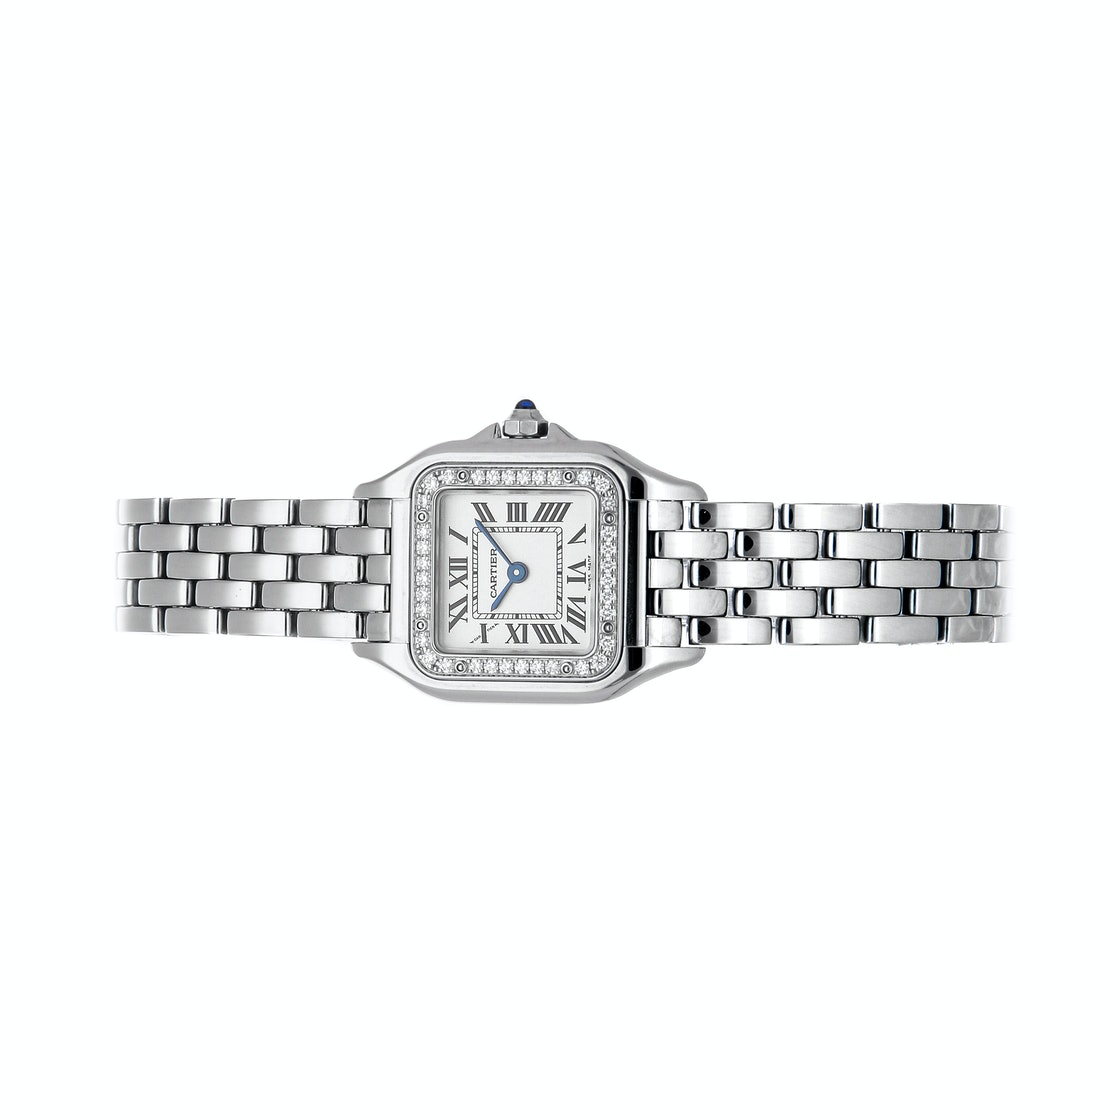 Cartier Panthere Small Model W4PN0007